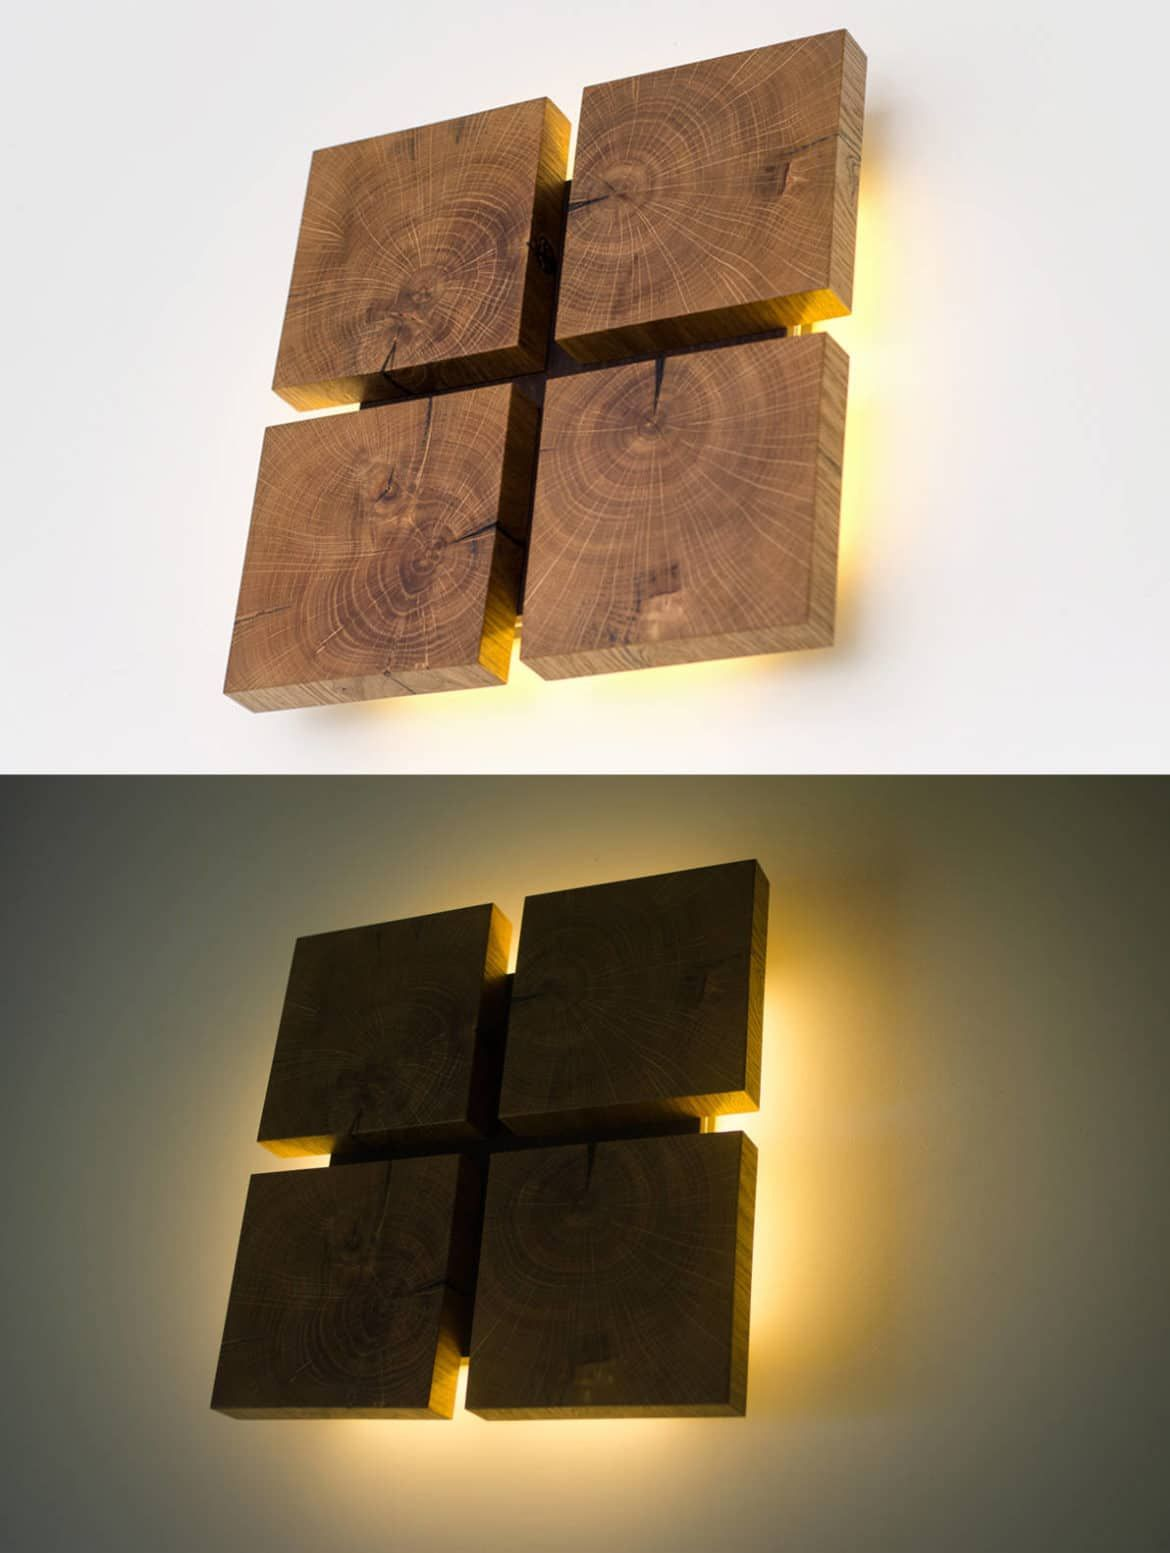 Diy Paper Wall Lamp Lamparas De Pared Lamparas Diy Lampara De